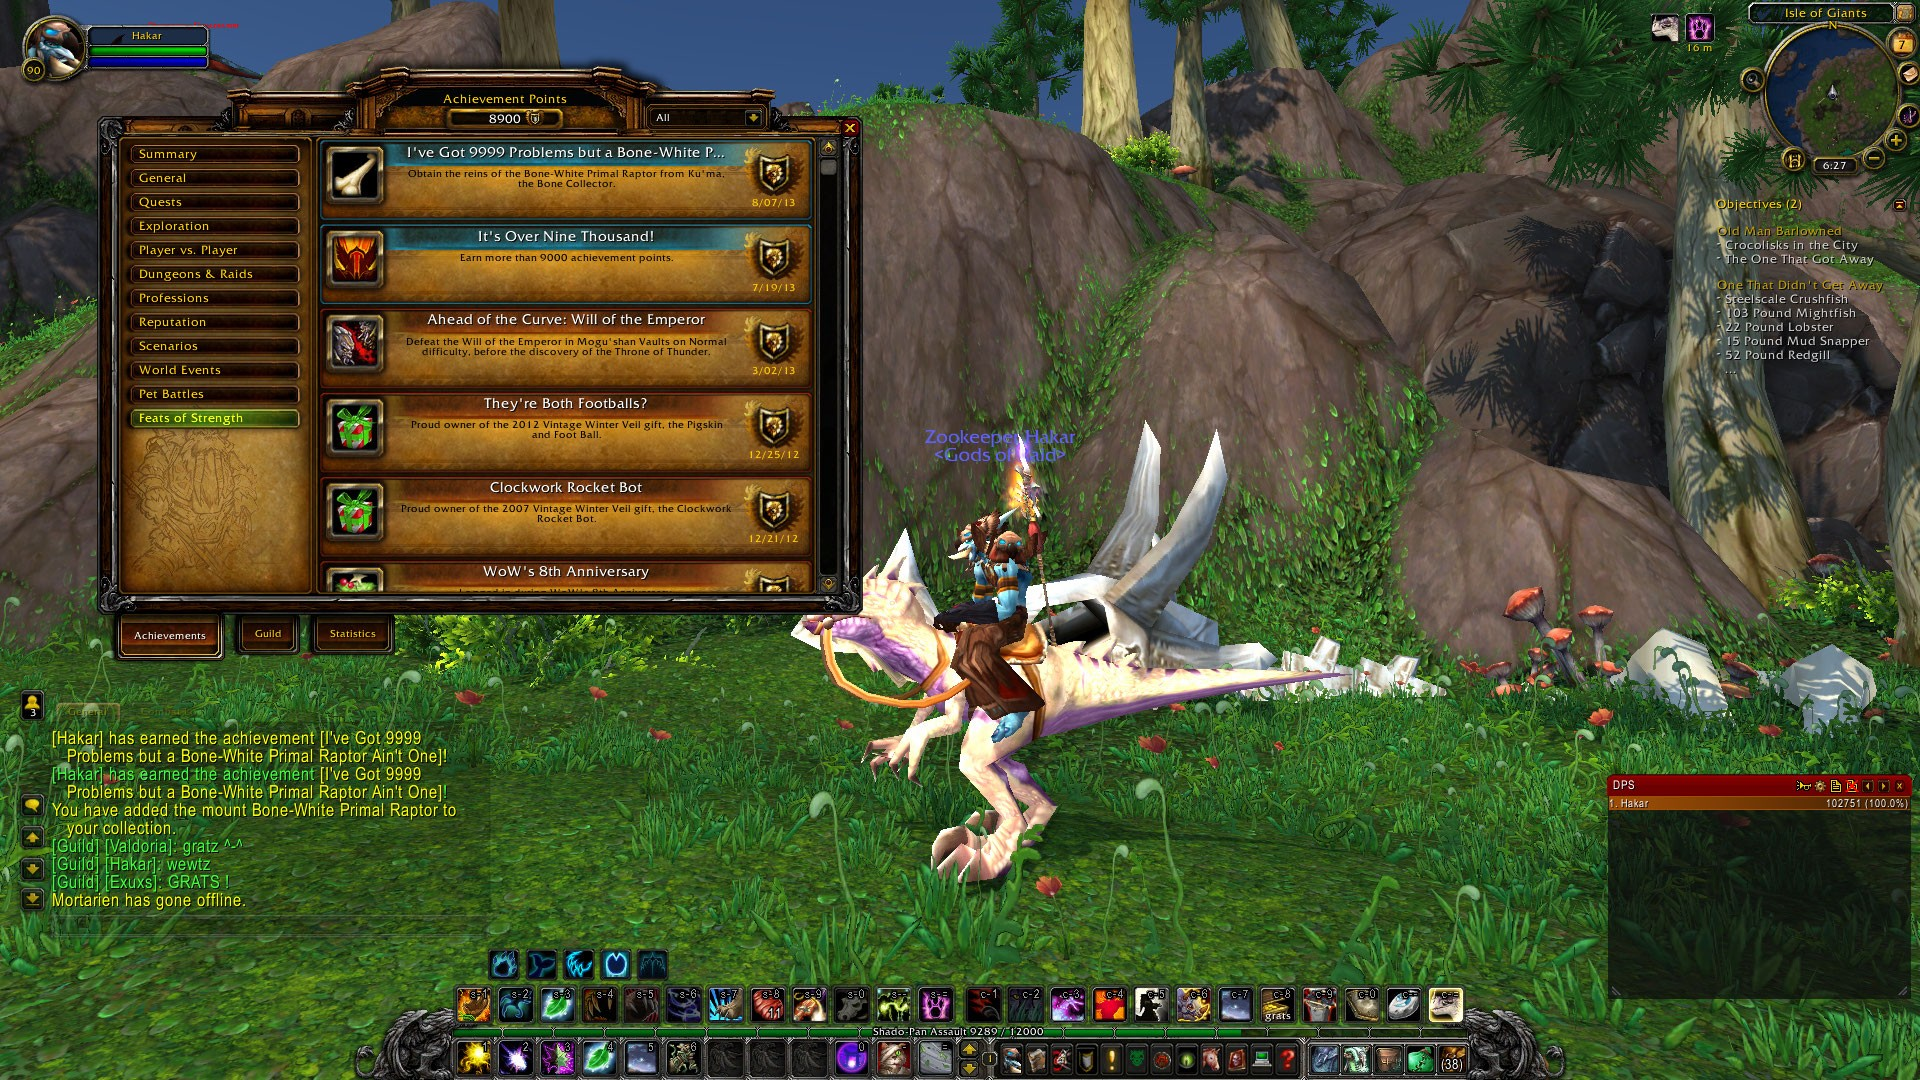 World of Warcraft - I got 9999 problems, but a bone-white primal raptor ain't one!